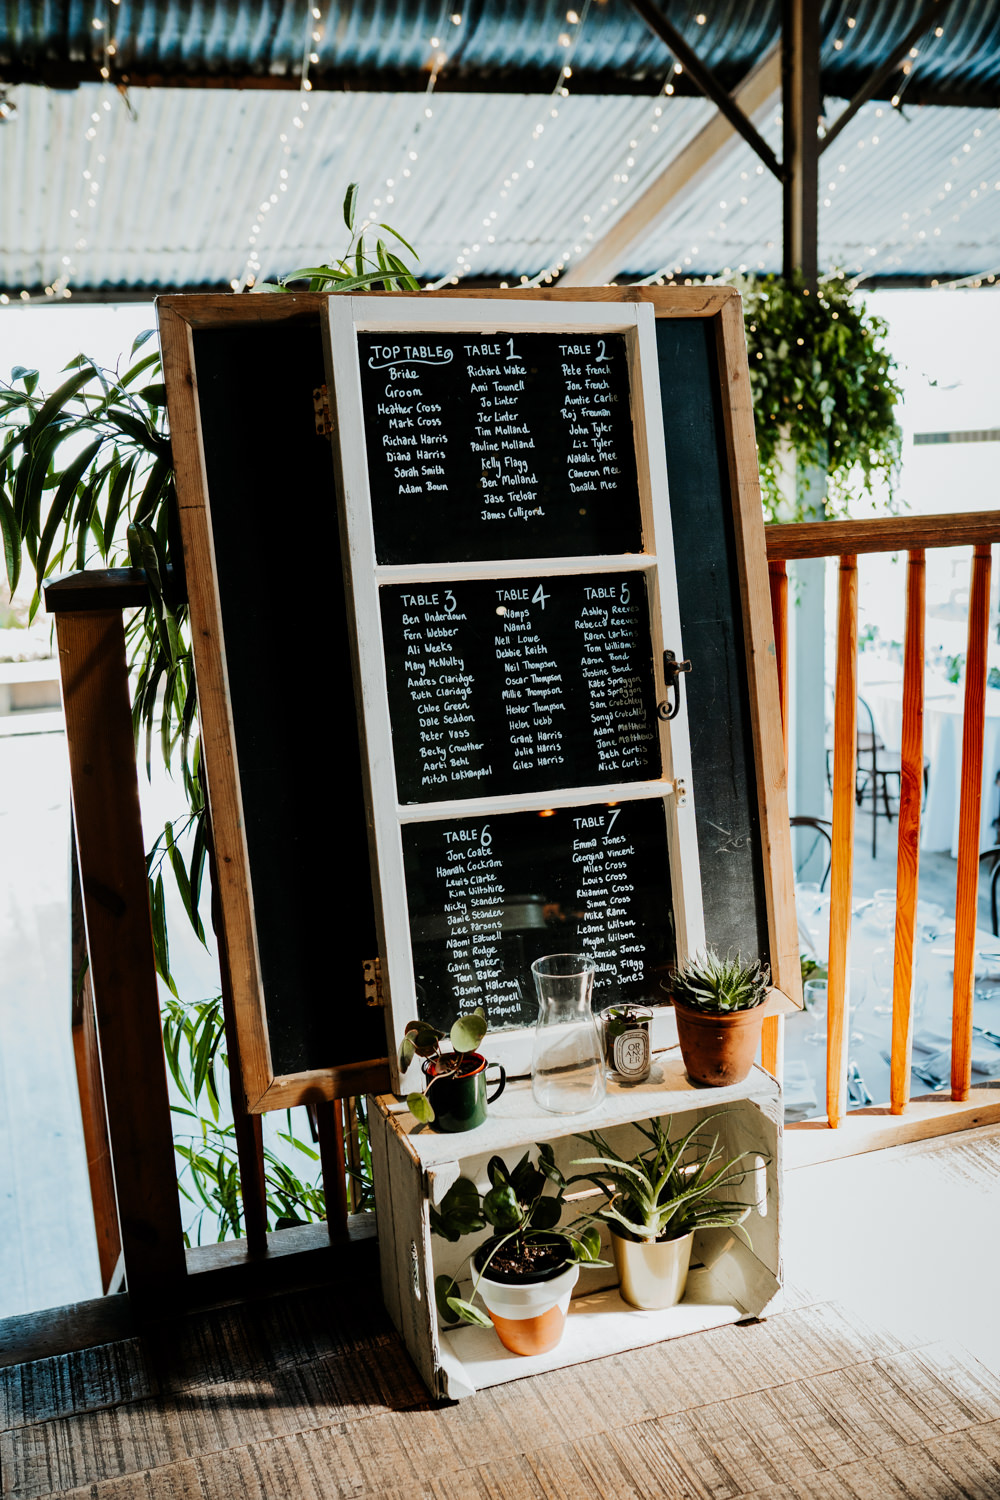 Table Plan Window Chalk Crates Succulents Contemporary Barn Wedding Ryan Goold Photography